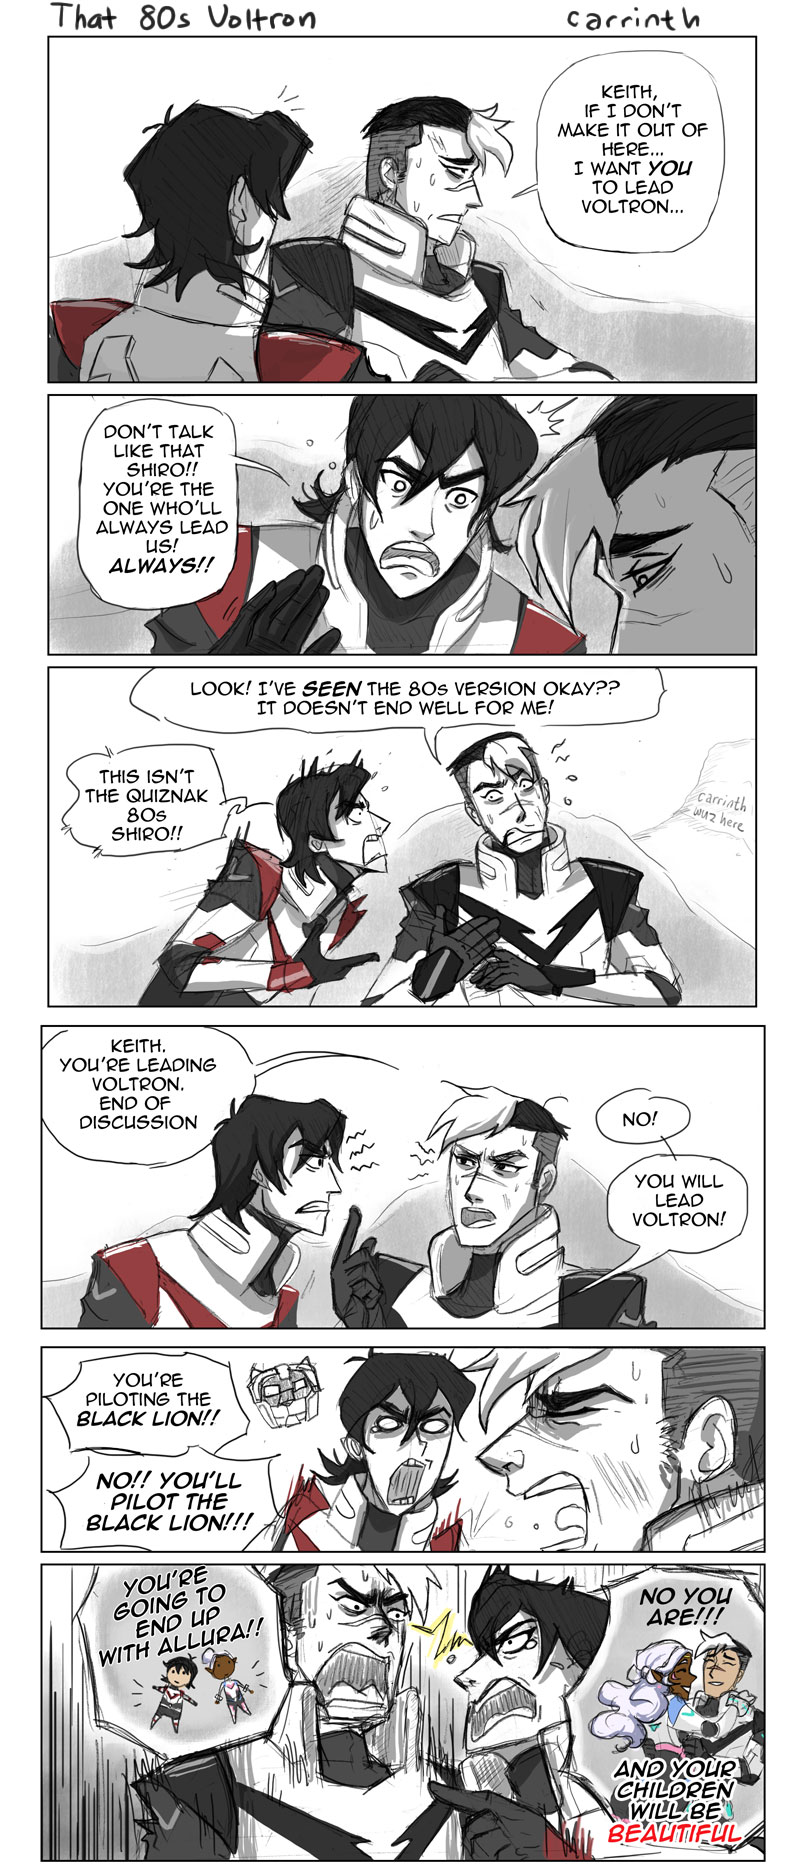 Voltron: That 80s Voltron by carrinth